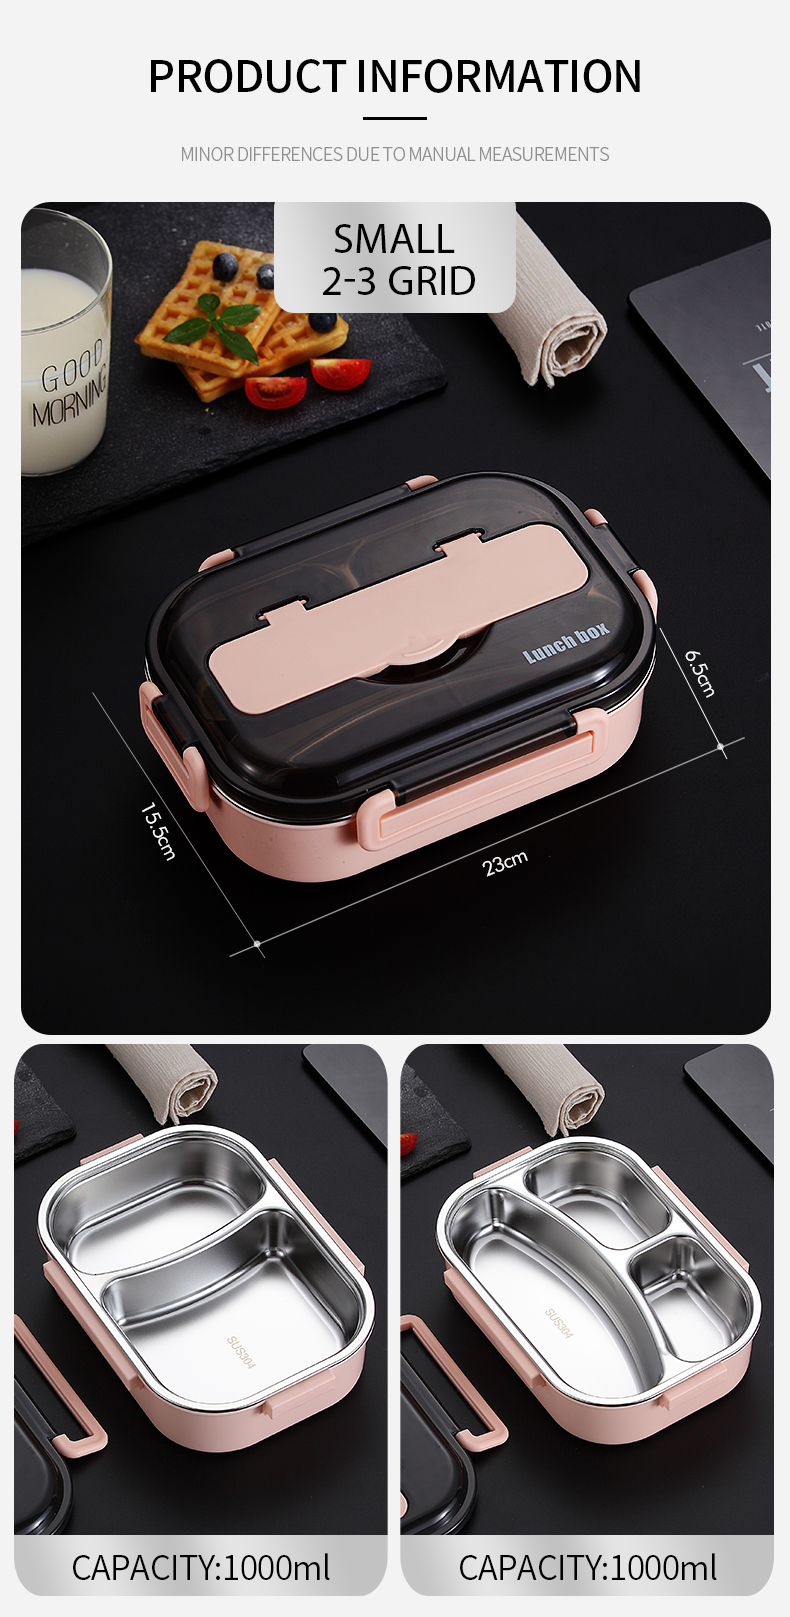 H46d81cc9269f4fb59fd3f8b692447e7aV - WORTHBUY Japanese Kids Lunch Box 304 stainless steel Bento Lunch Box With Compartment Tableware Microwave Food Container Box